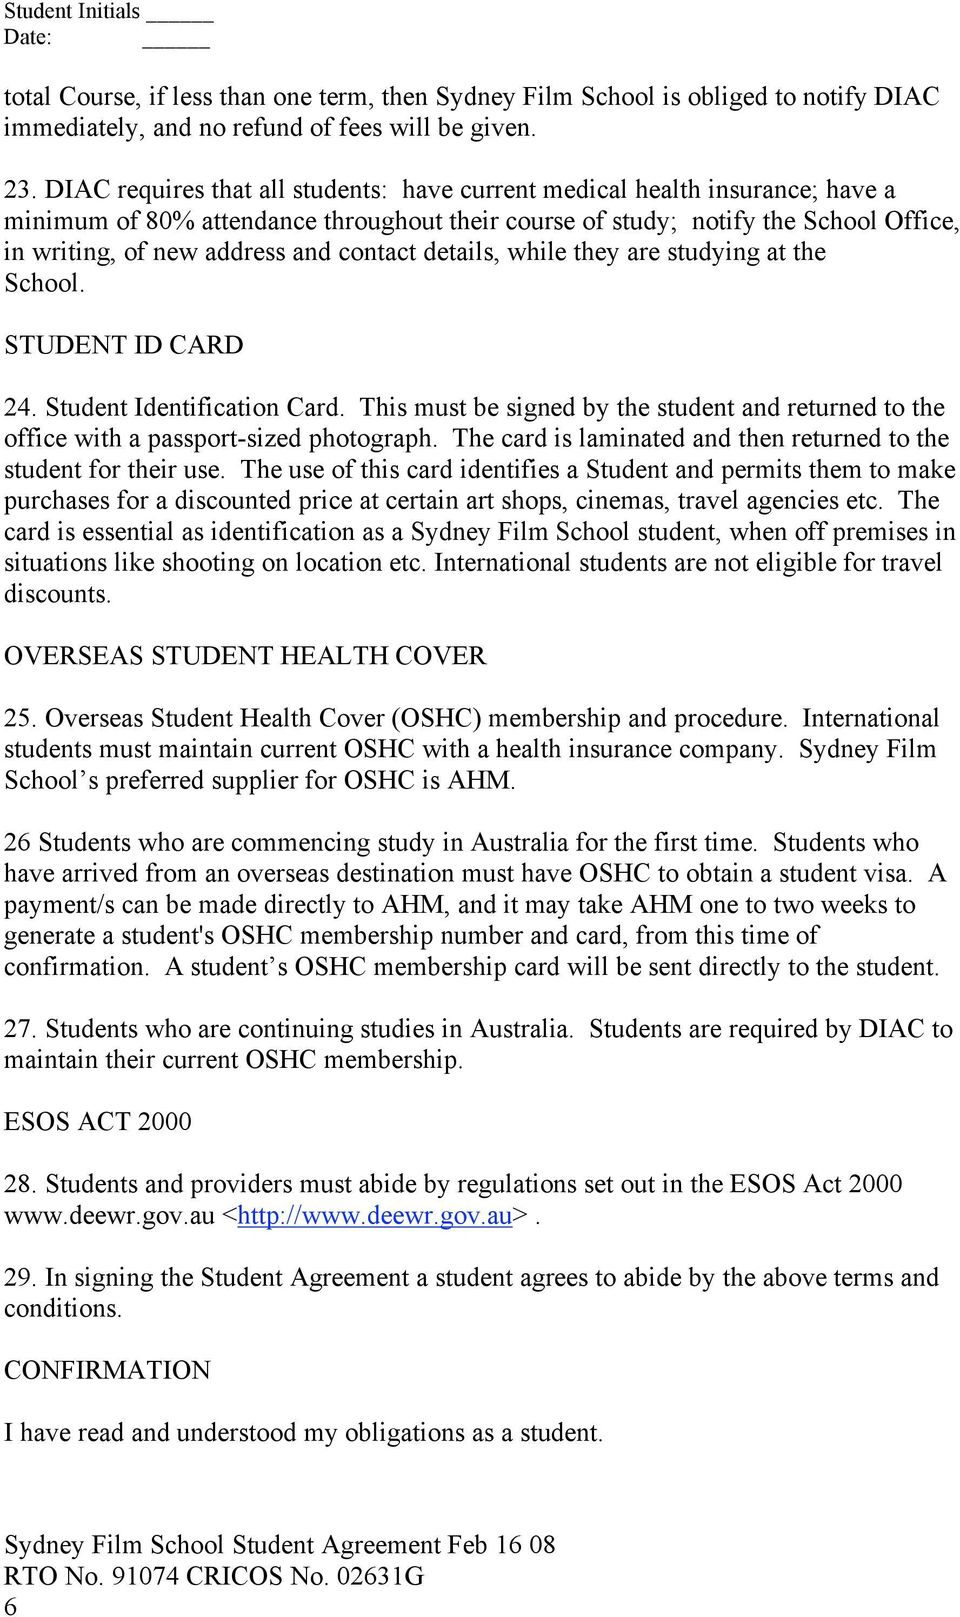 contact details, while they are studying at the School. STUDENT ID CARD 24. Student Identification Card. This must be signed by the student and returned to the office with a passport-sized photograph.